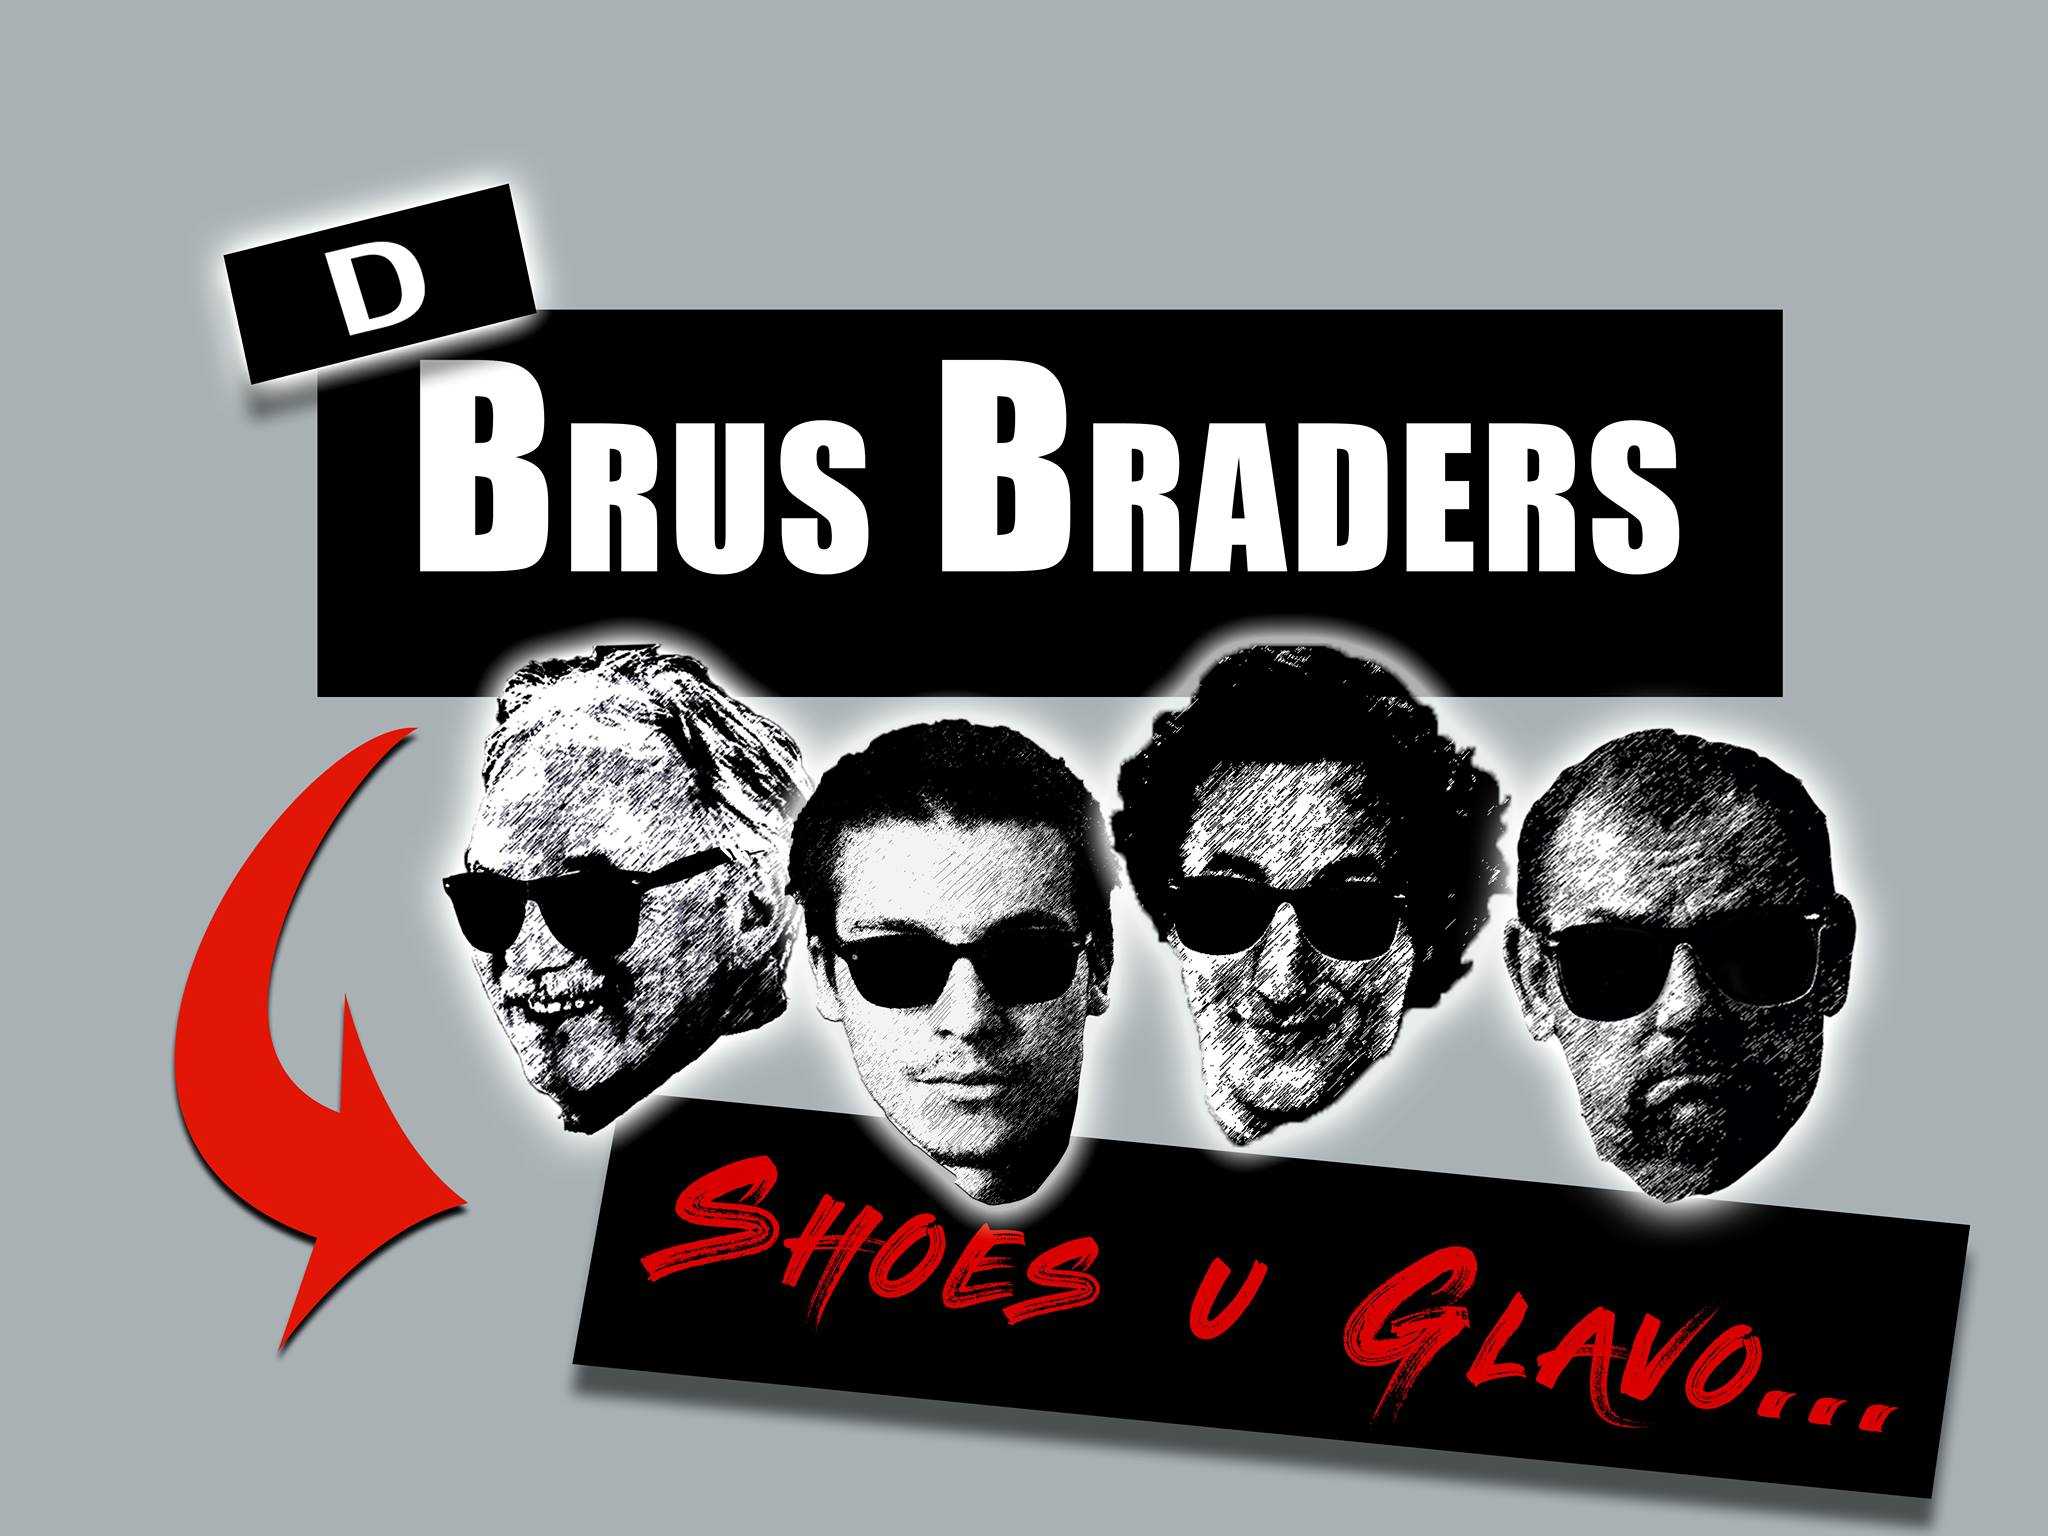 "Commedia ""SHOES U GLAVO…"" - in sloveno"